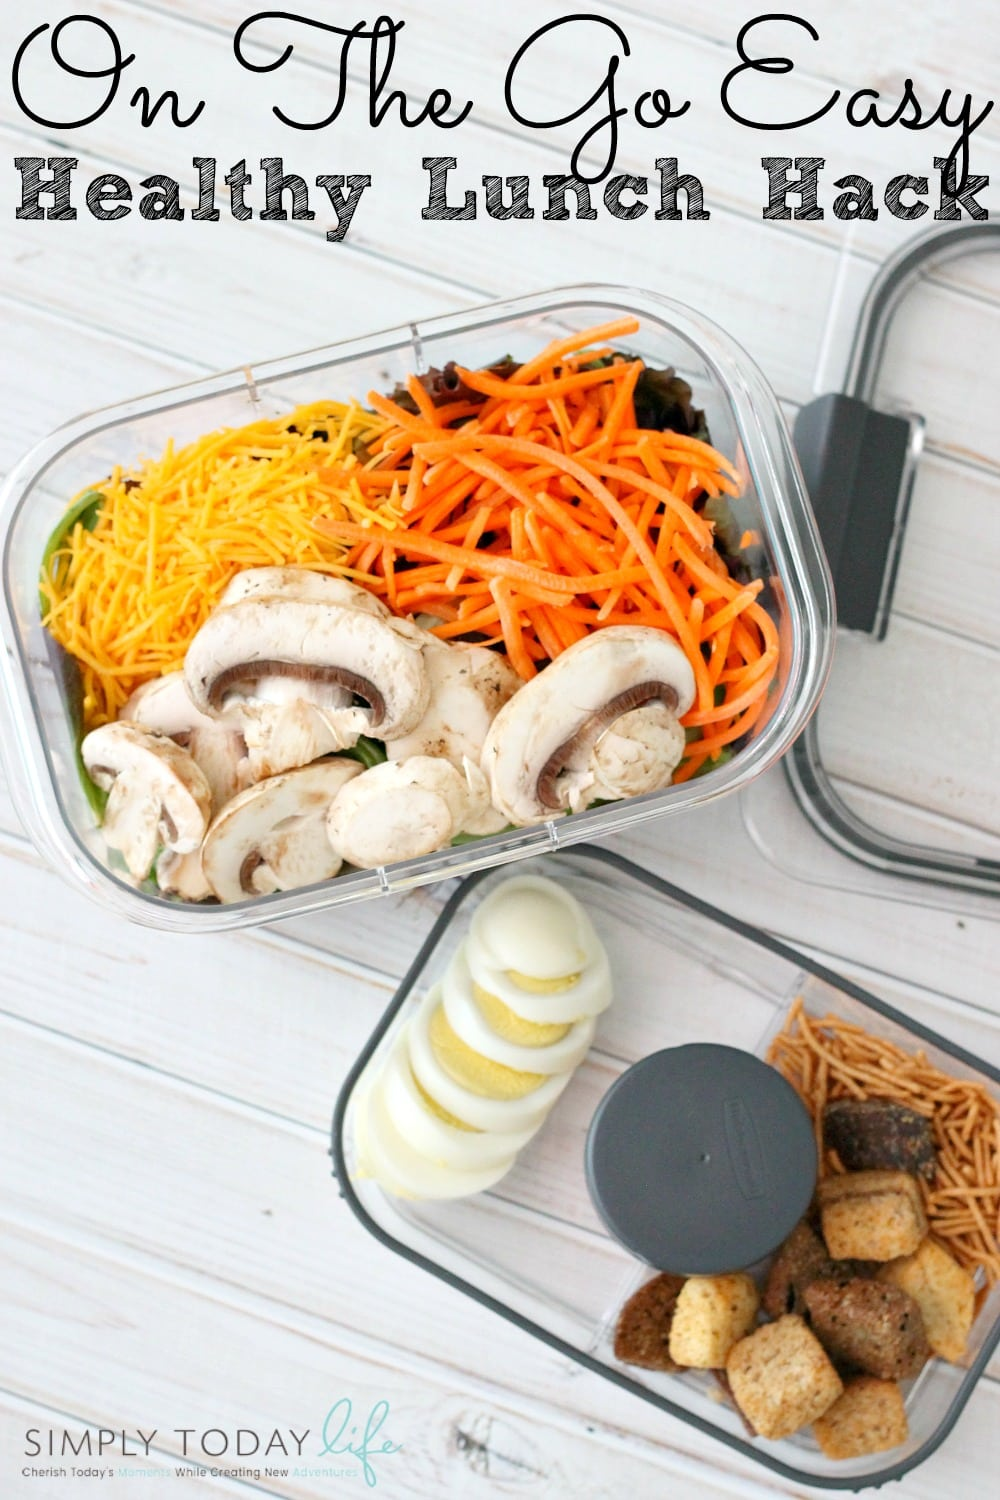 On The Go Easy Healthy Lunch Hack - simplytodaylife.com